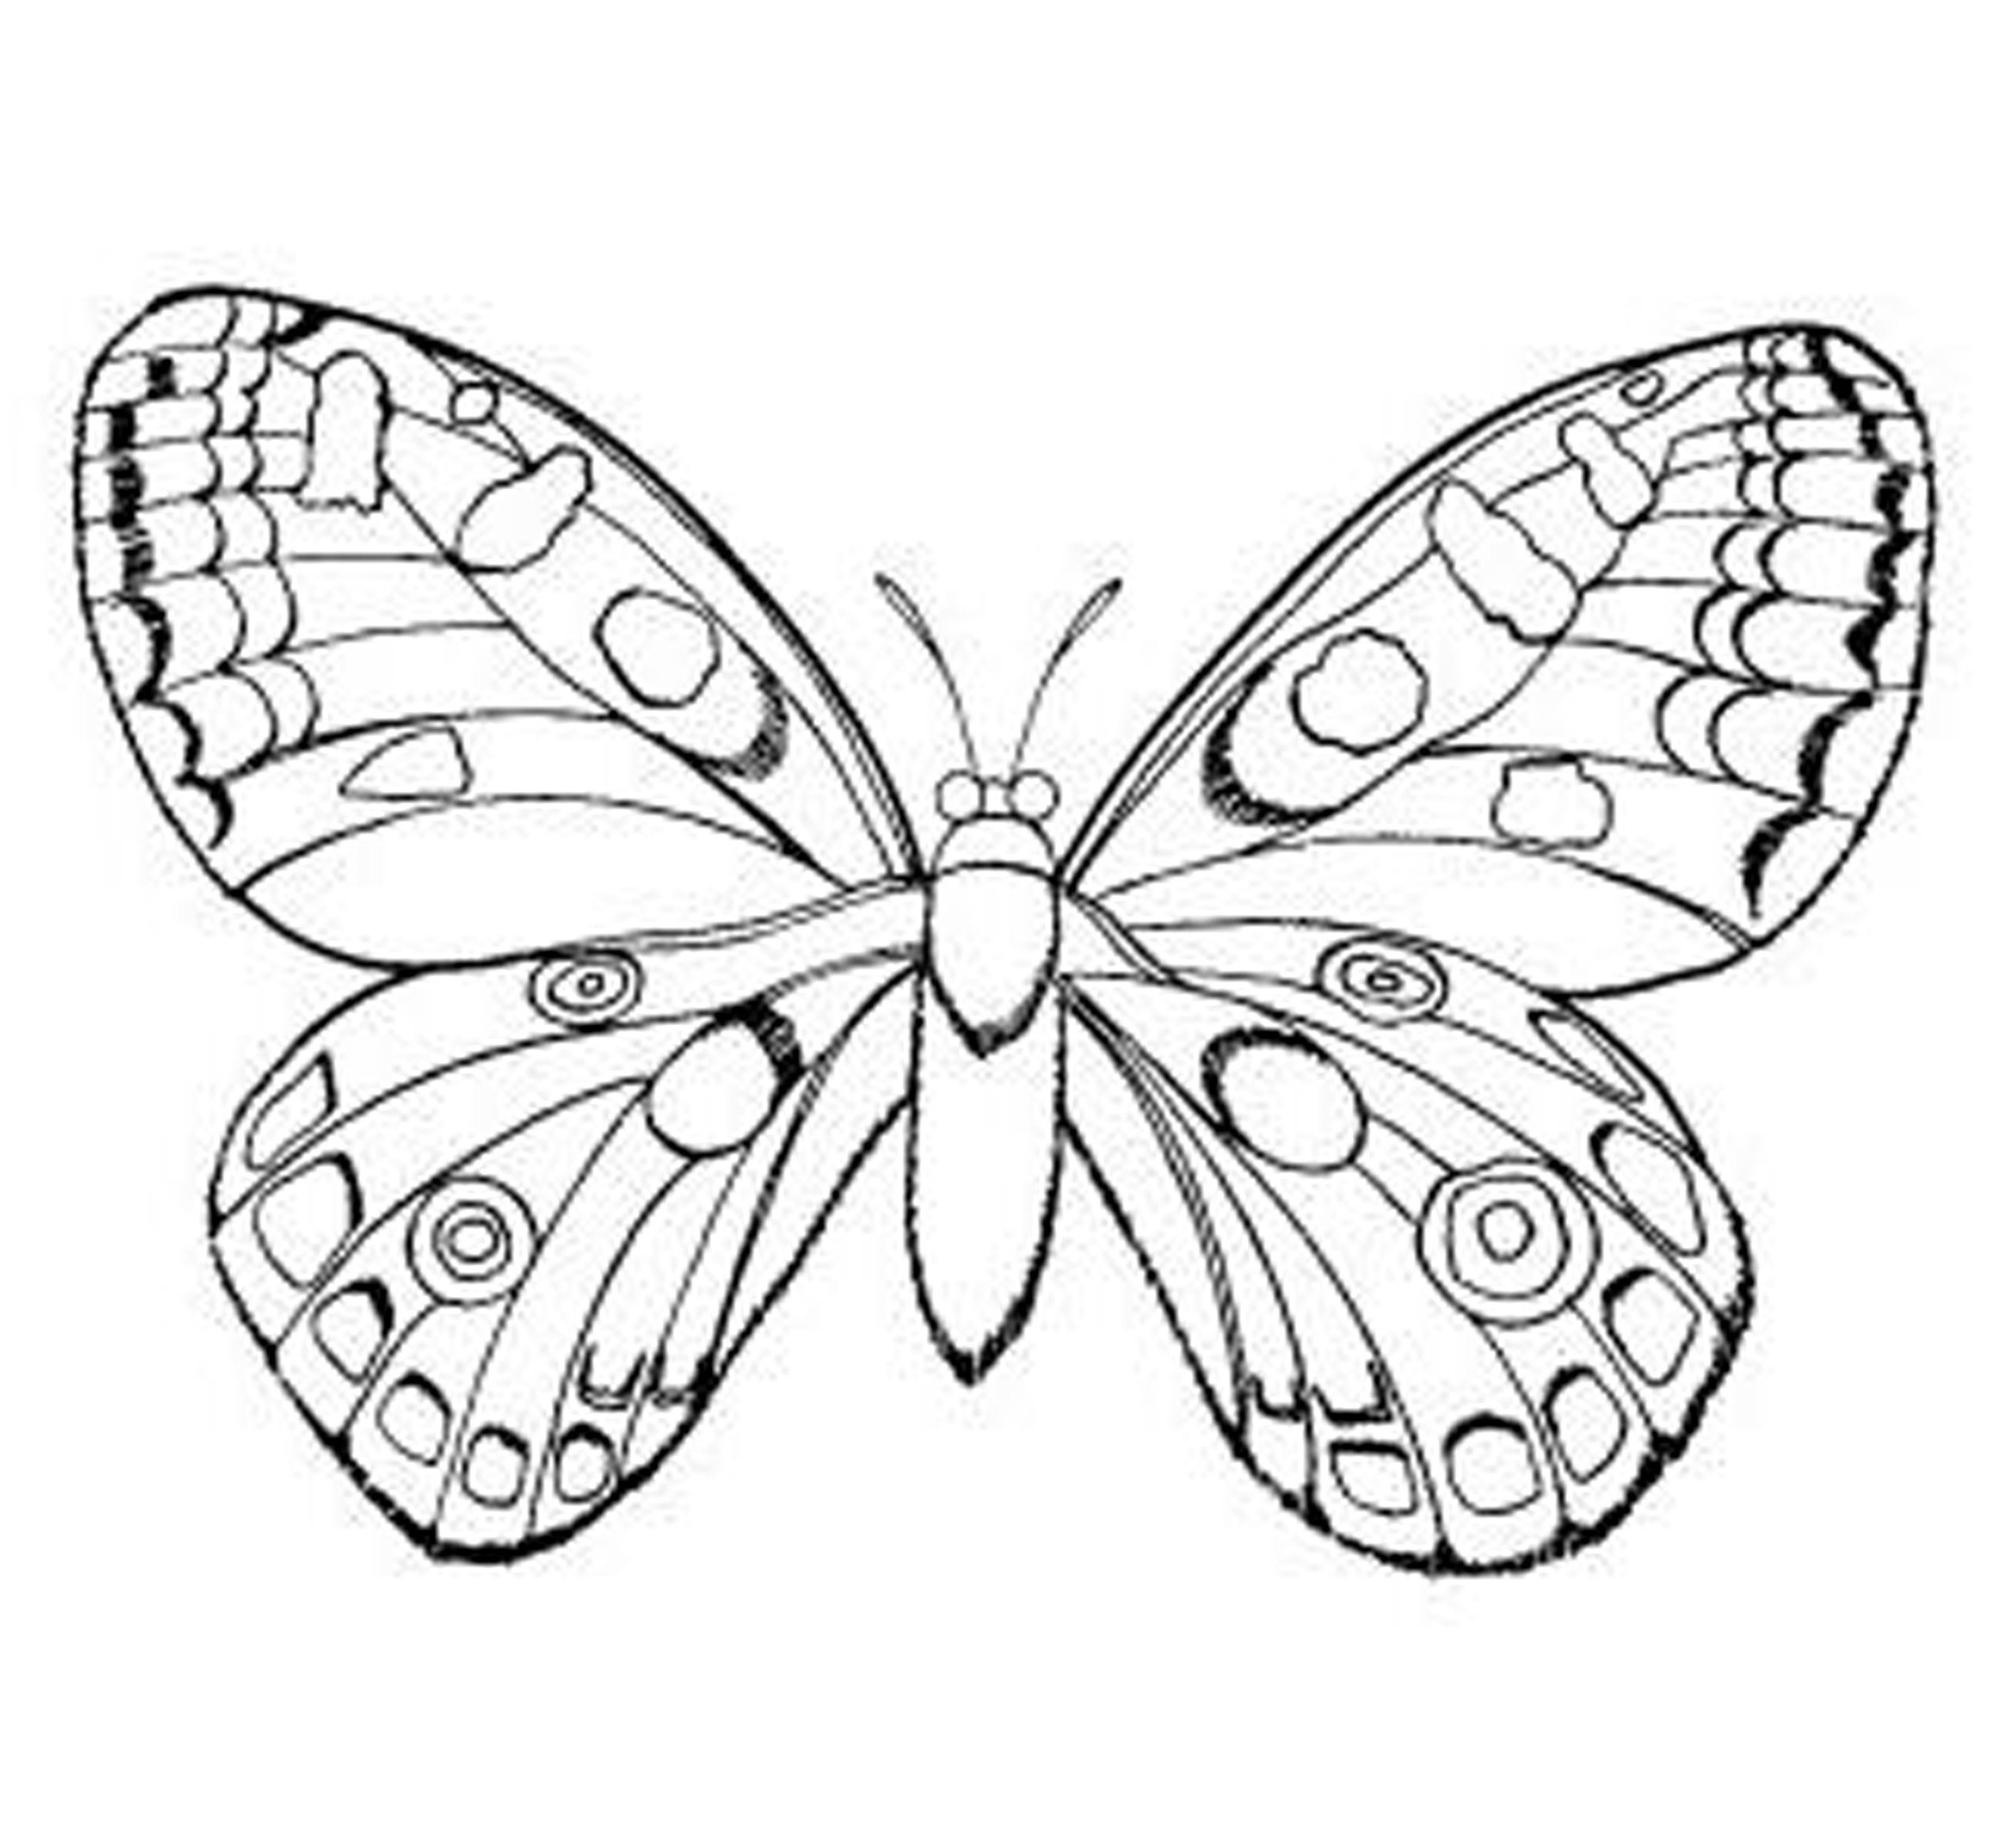 Coloring Pages For Girls at GetDrawings.com | Free for ...